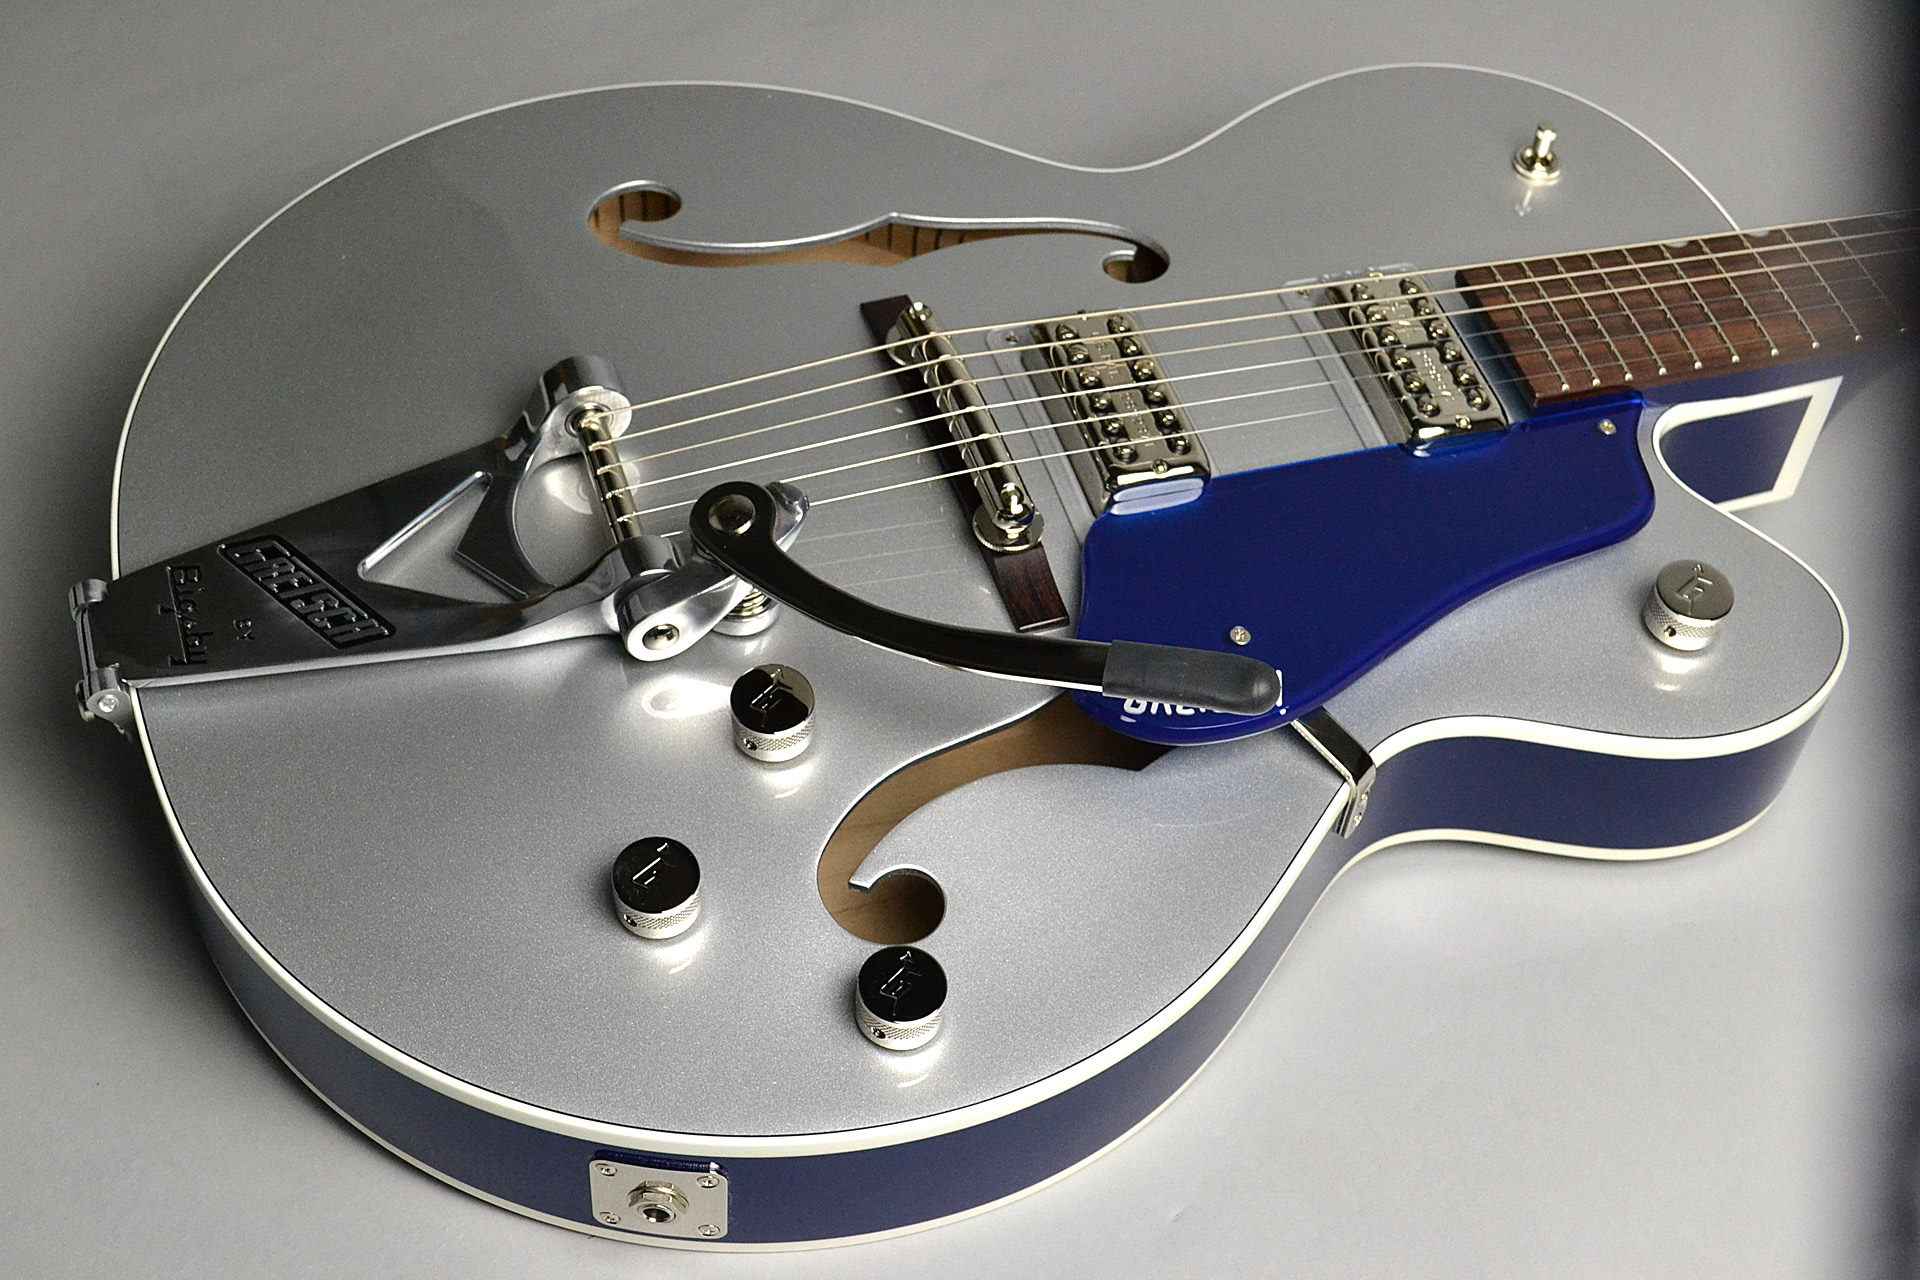 G6118T Players Edition Anniversary 2-Tone Iridium Silver/Azure Metallicのボディトップ-アップ画像